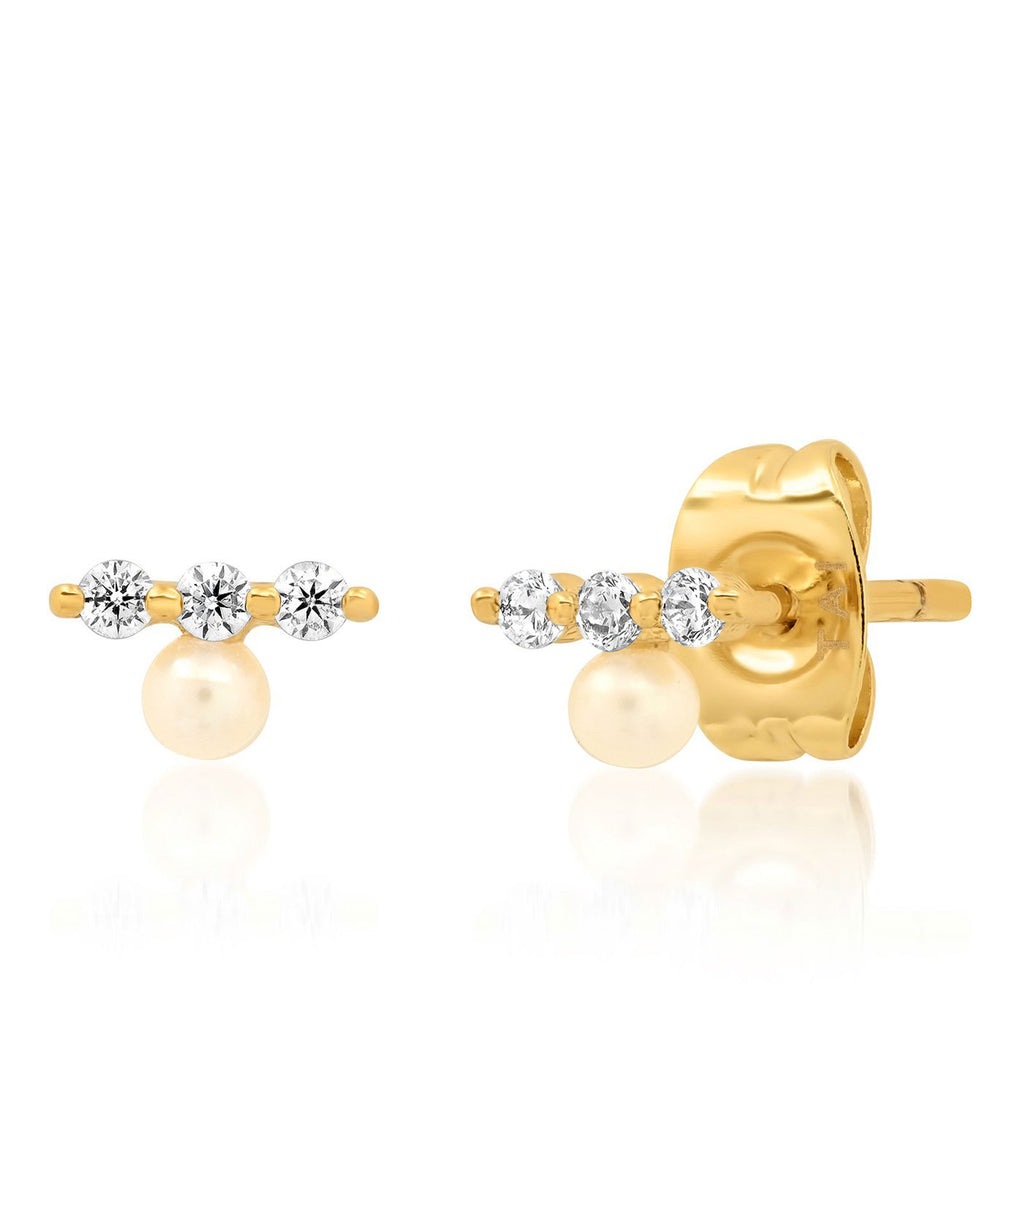 TAI Gold Pearl Triple Stud Earrings